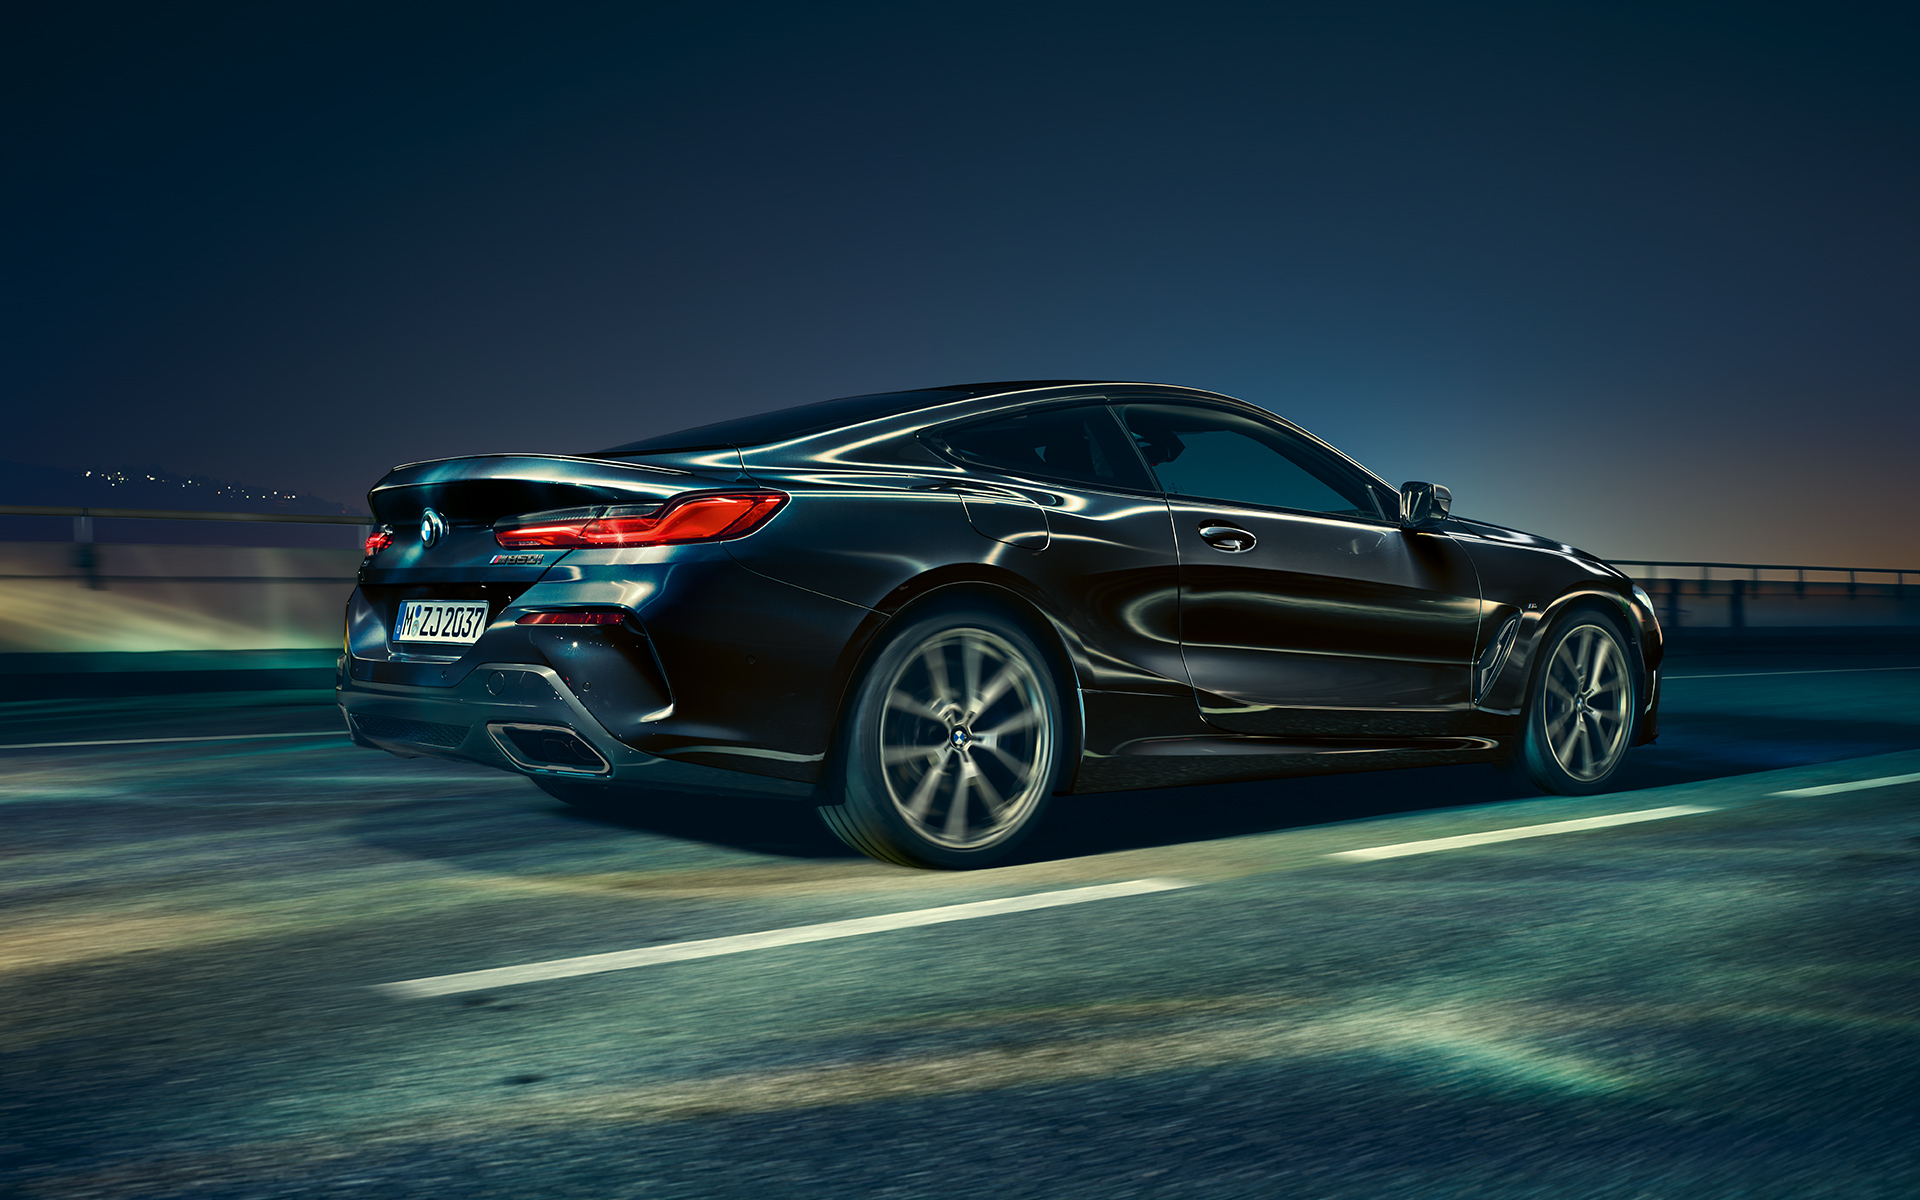 A three-quarter rear driving shot of the BMW 8 Series Coupé in an urban setting at night.